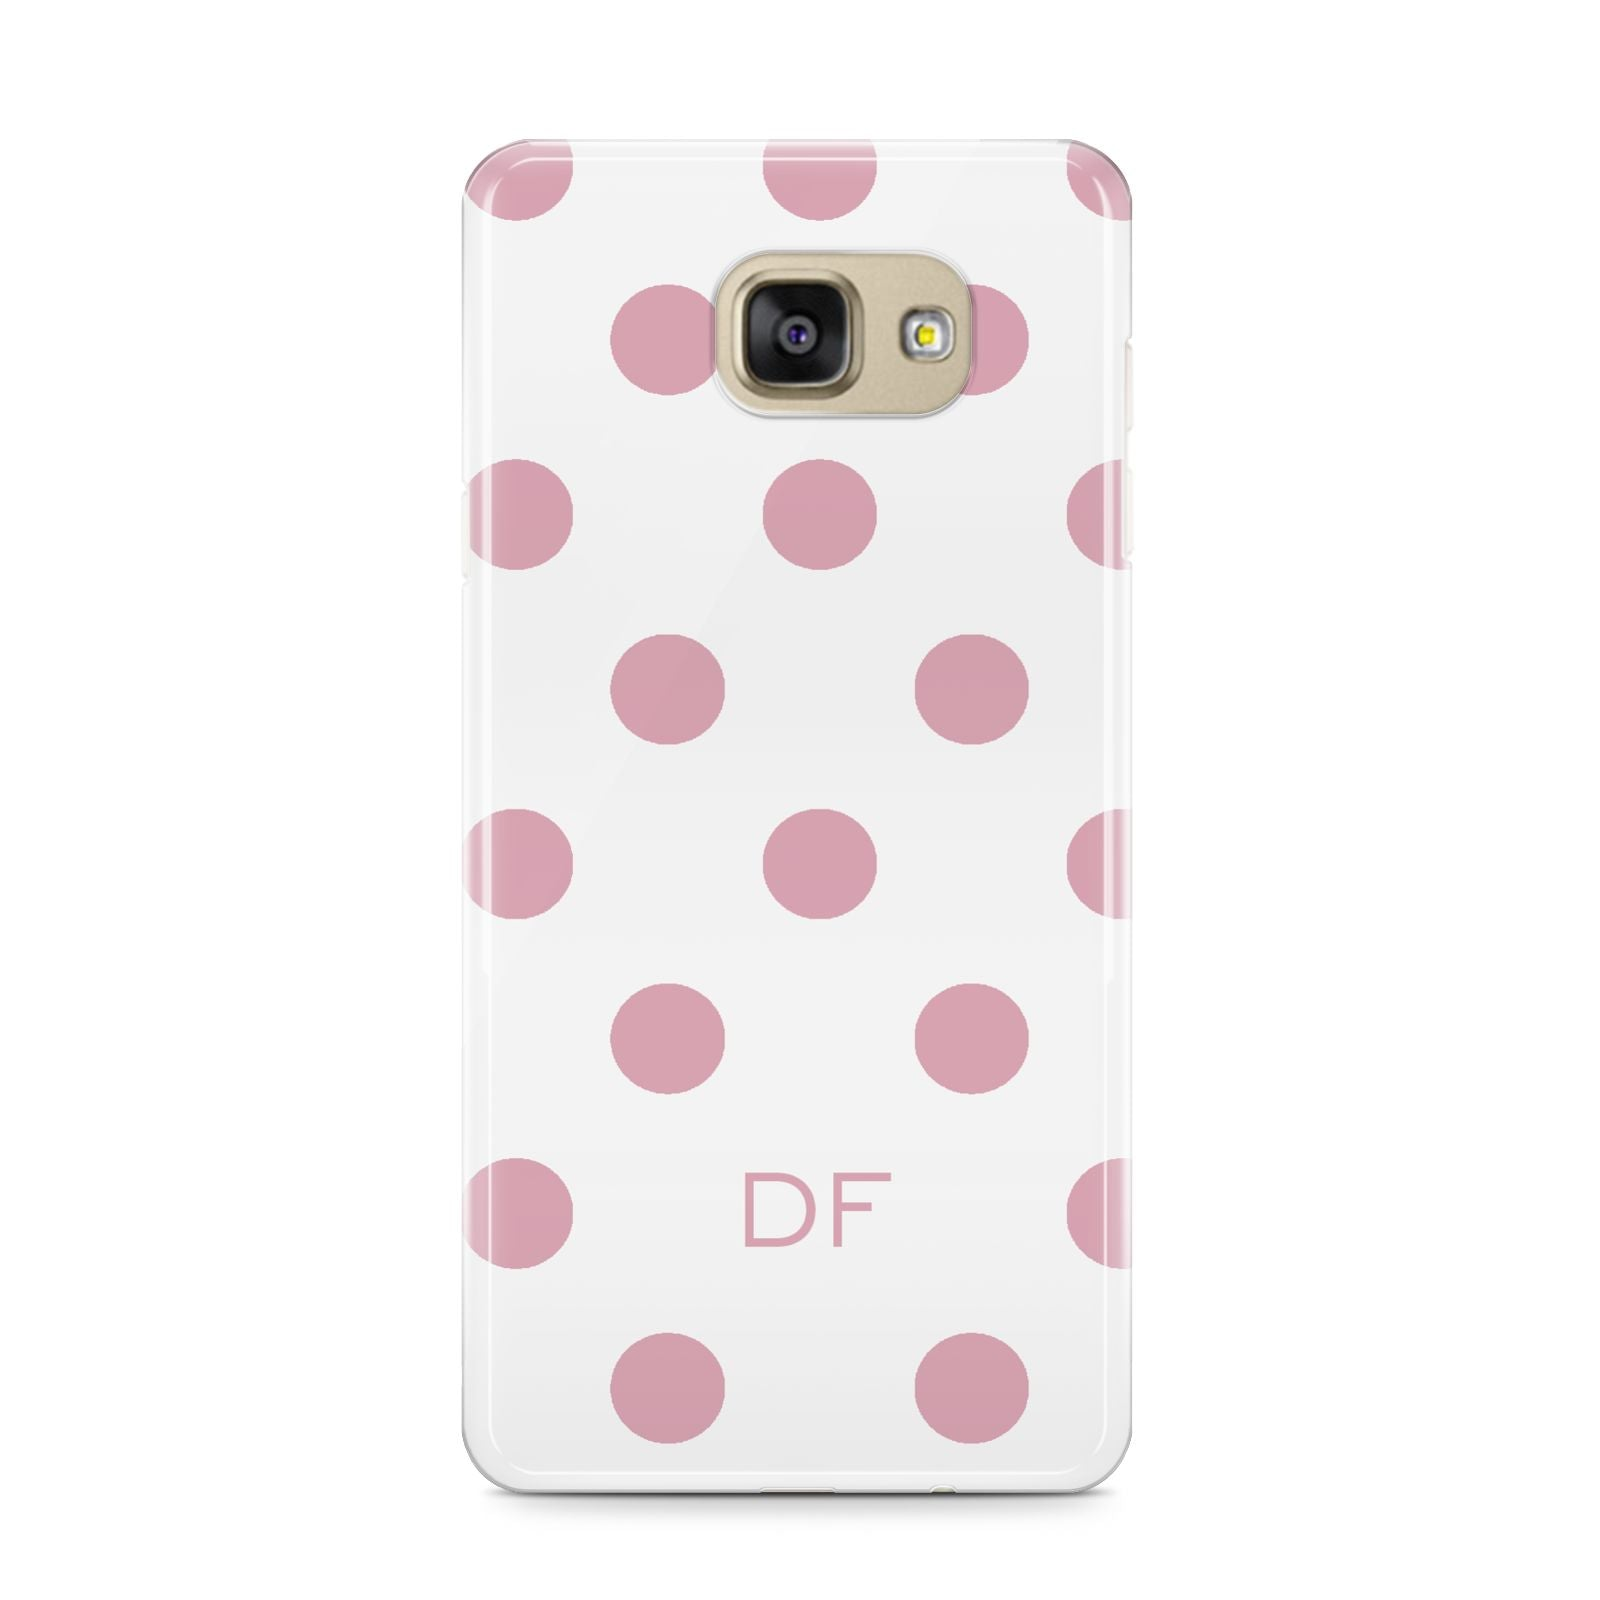 Dots Initials Personalised Samsung Galaxy A9 2016 Case on gold phone